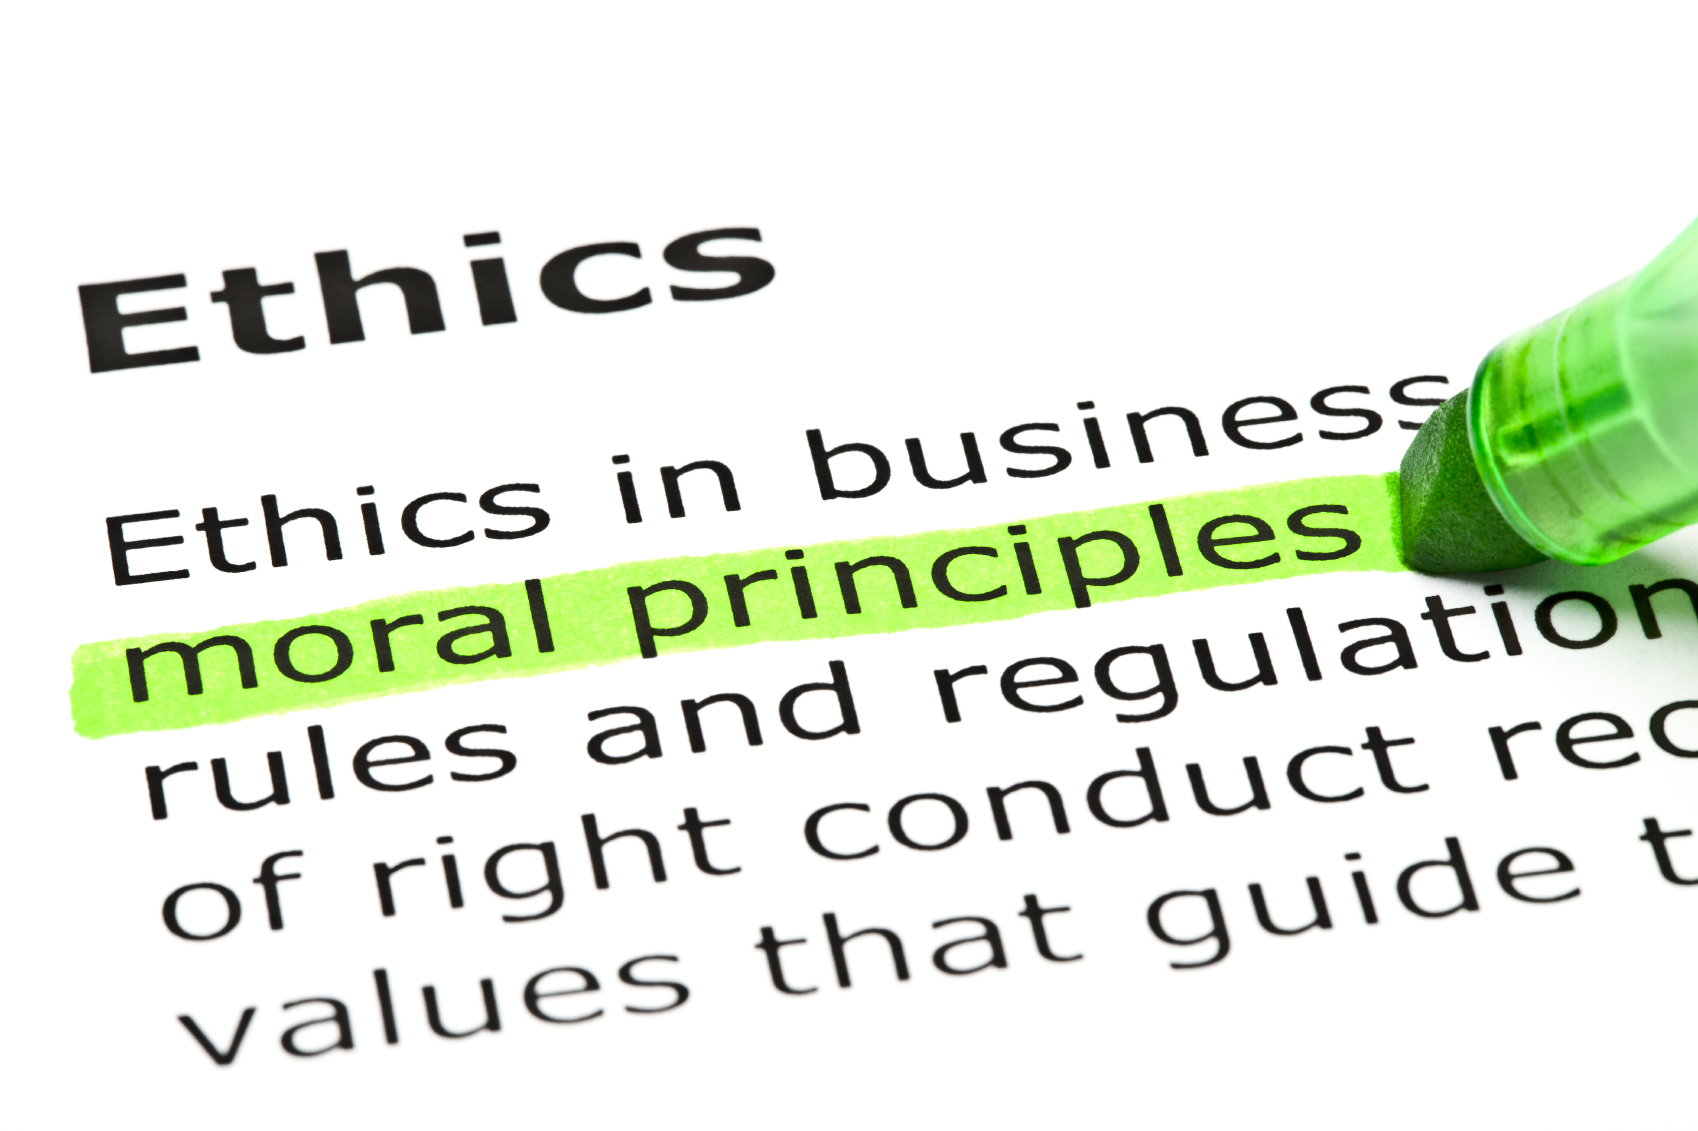 Values and ethics clipart clipart royalty free stock Values And Ethics Clipart - Clip Art Library clipart royalty free stock